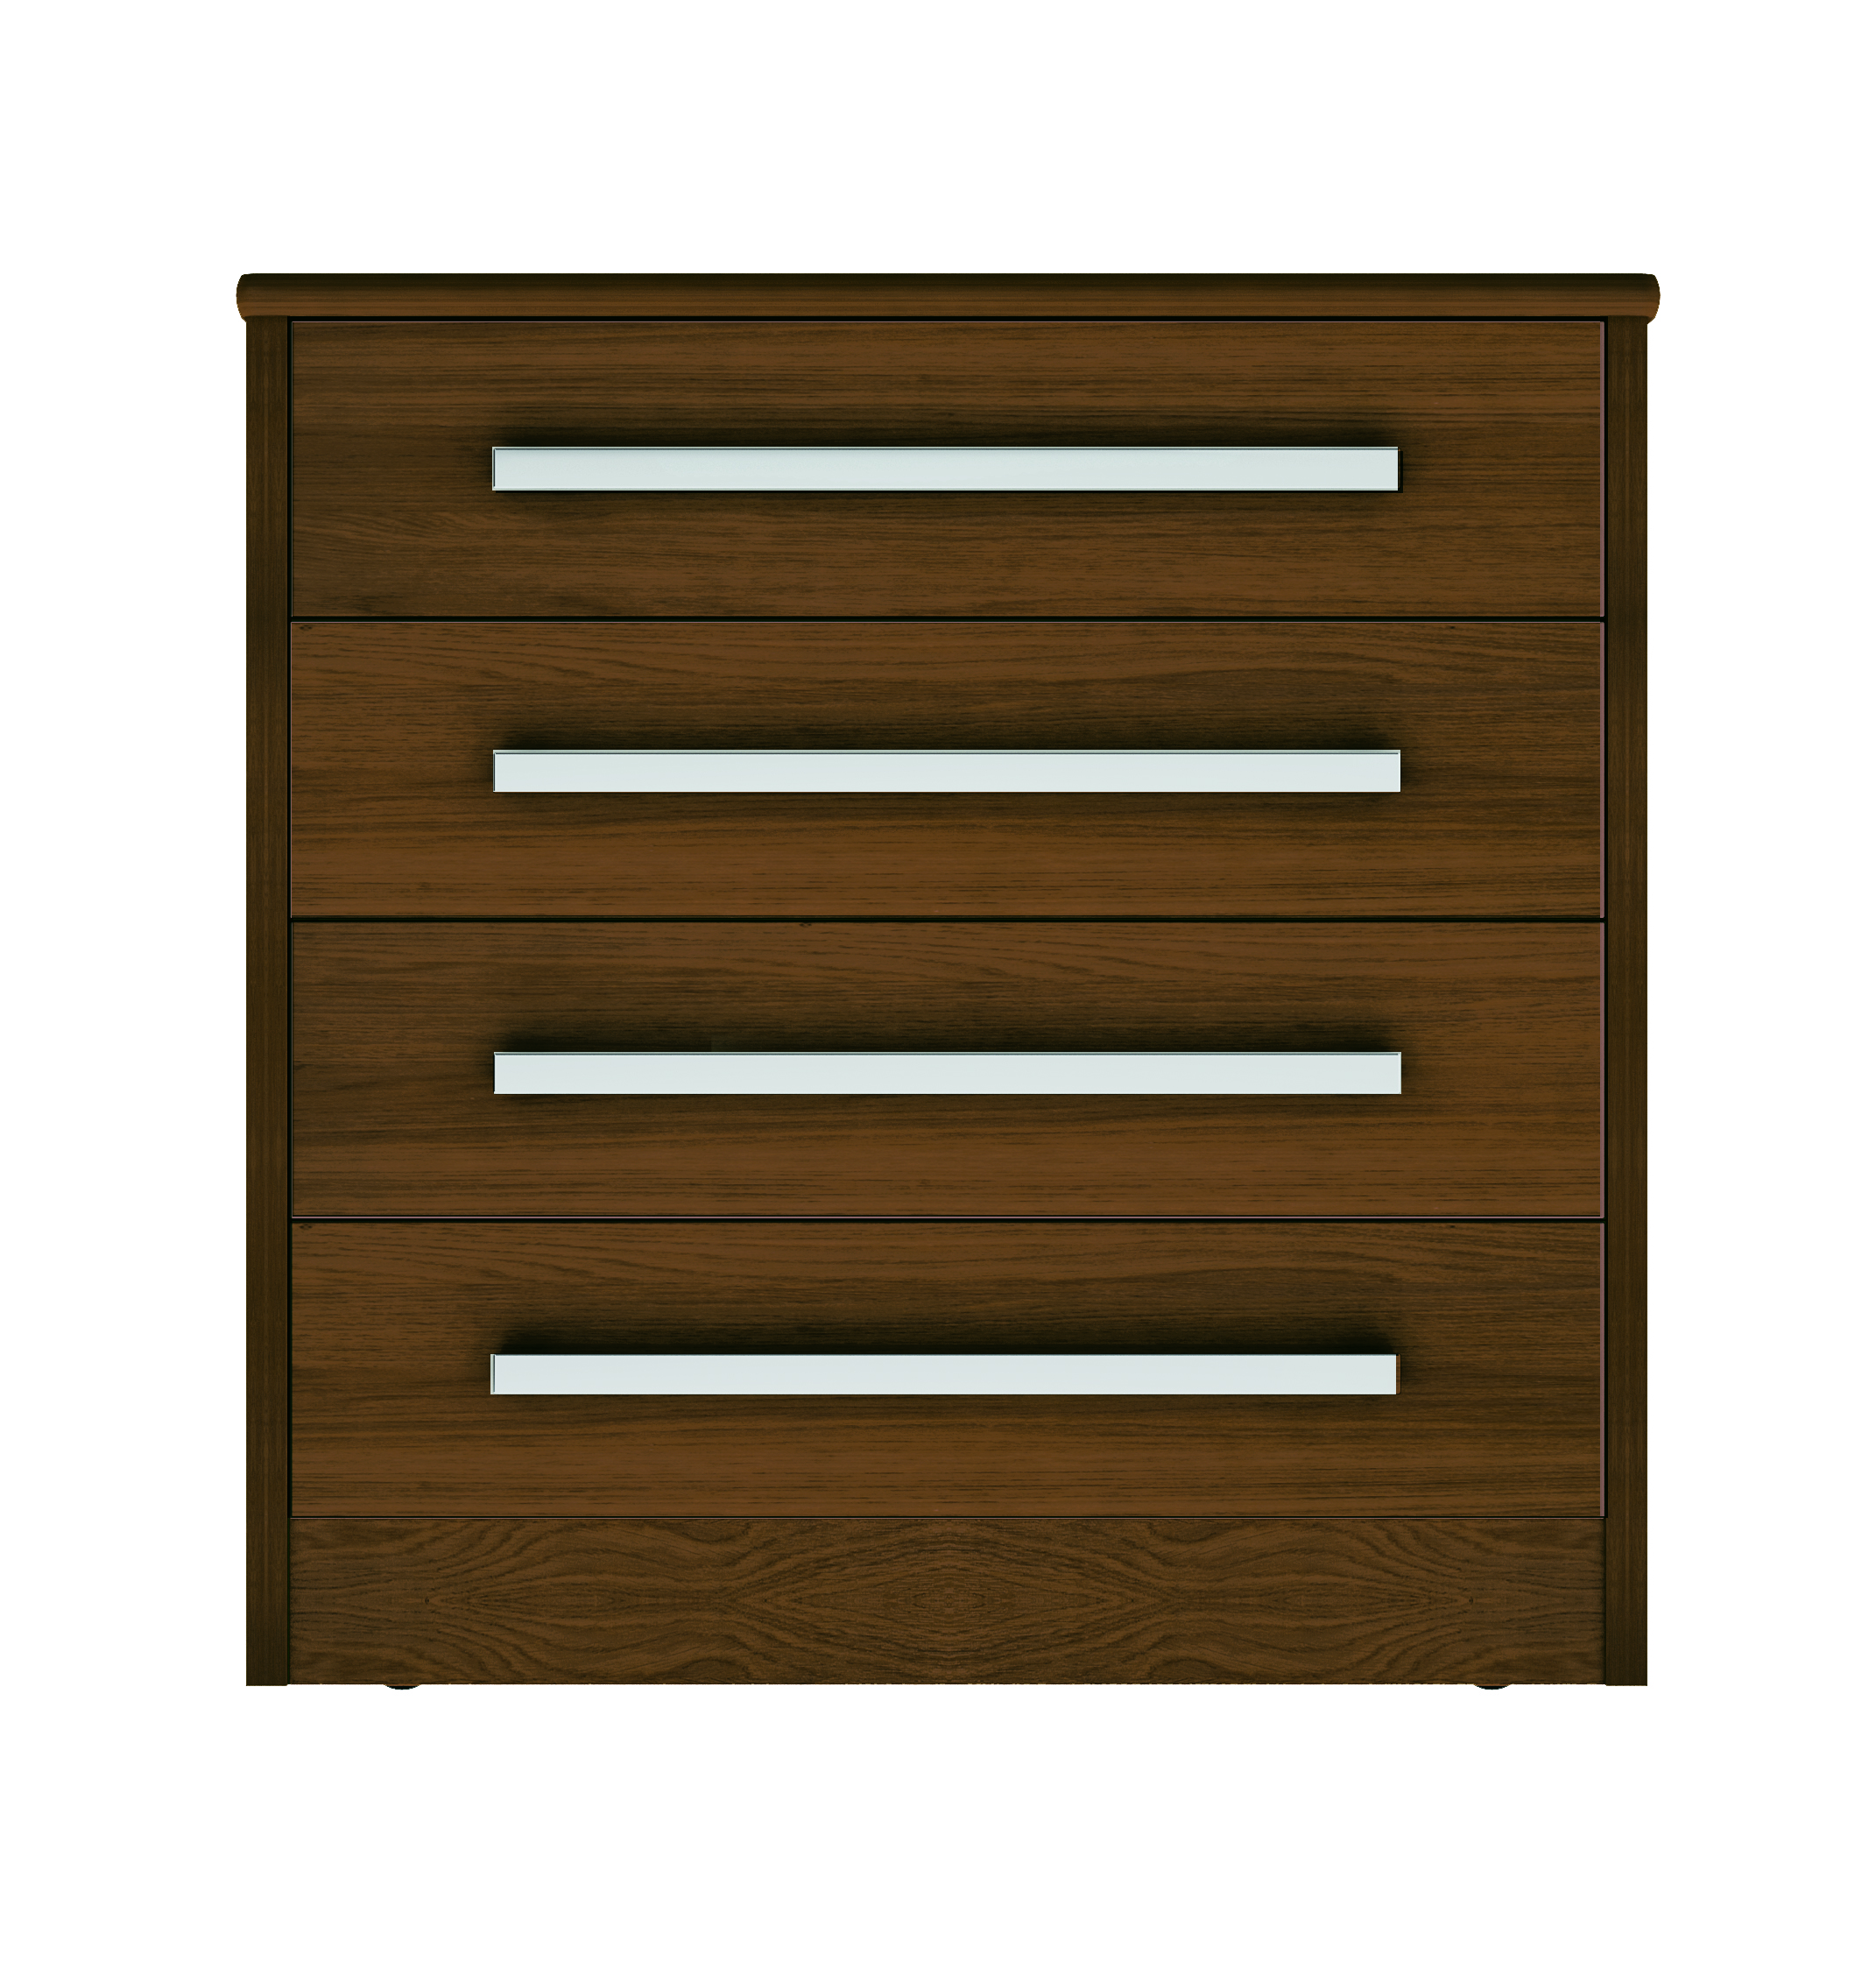 Moda 4 Drawer Chest